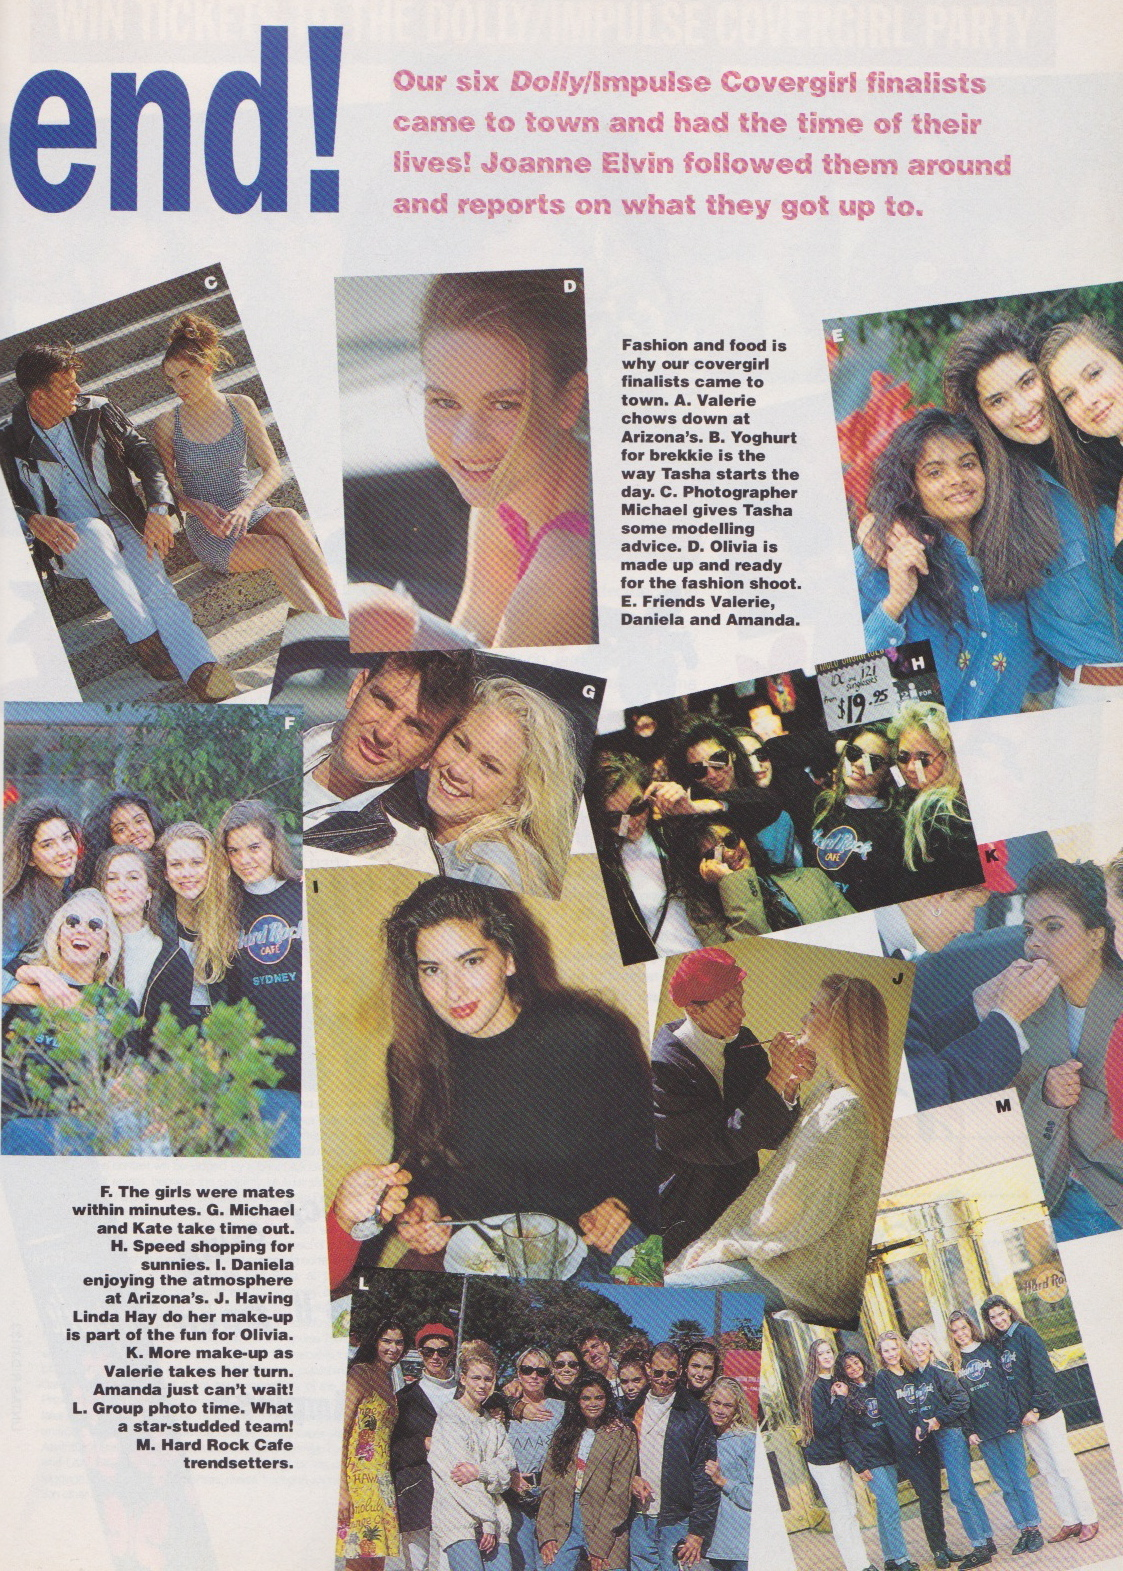 Dolly Covergirl Competition | 1991 Finalists Article 02.jpeg